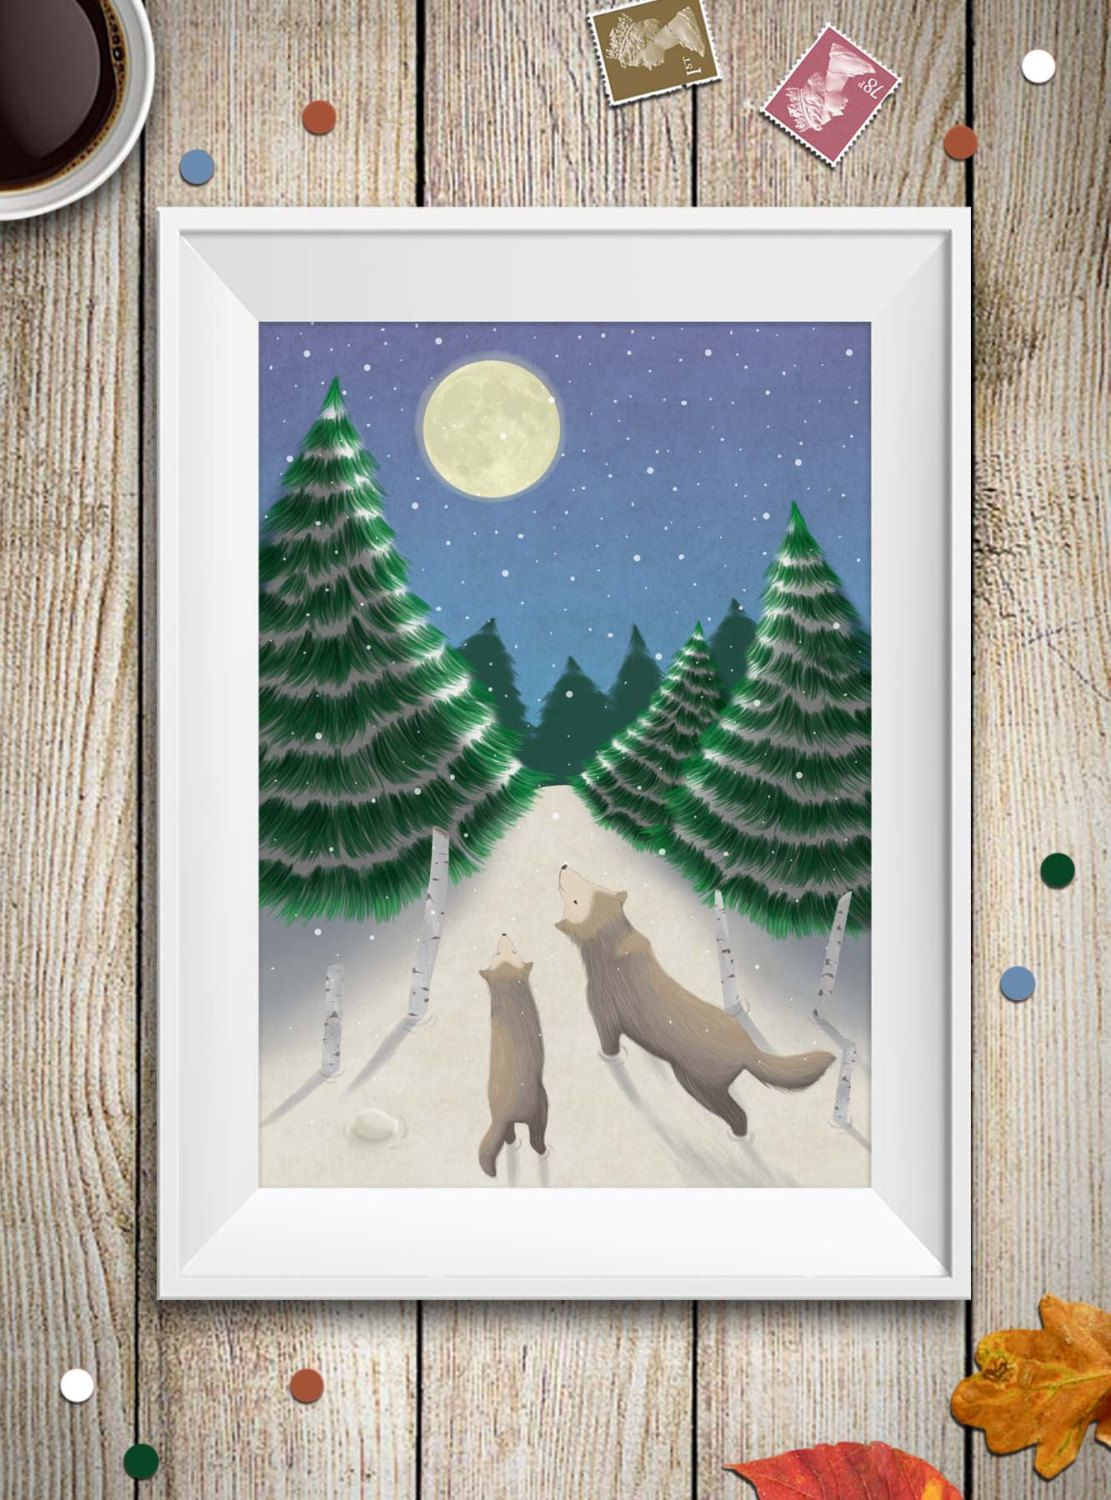 Woodland wolf with puppies print in winter timenursery art nature wall art family wolves wildlife print